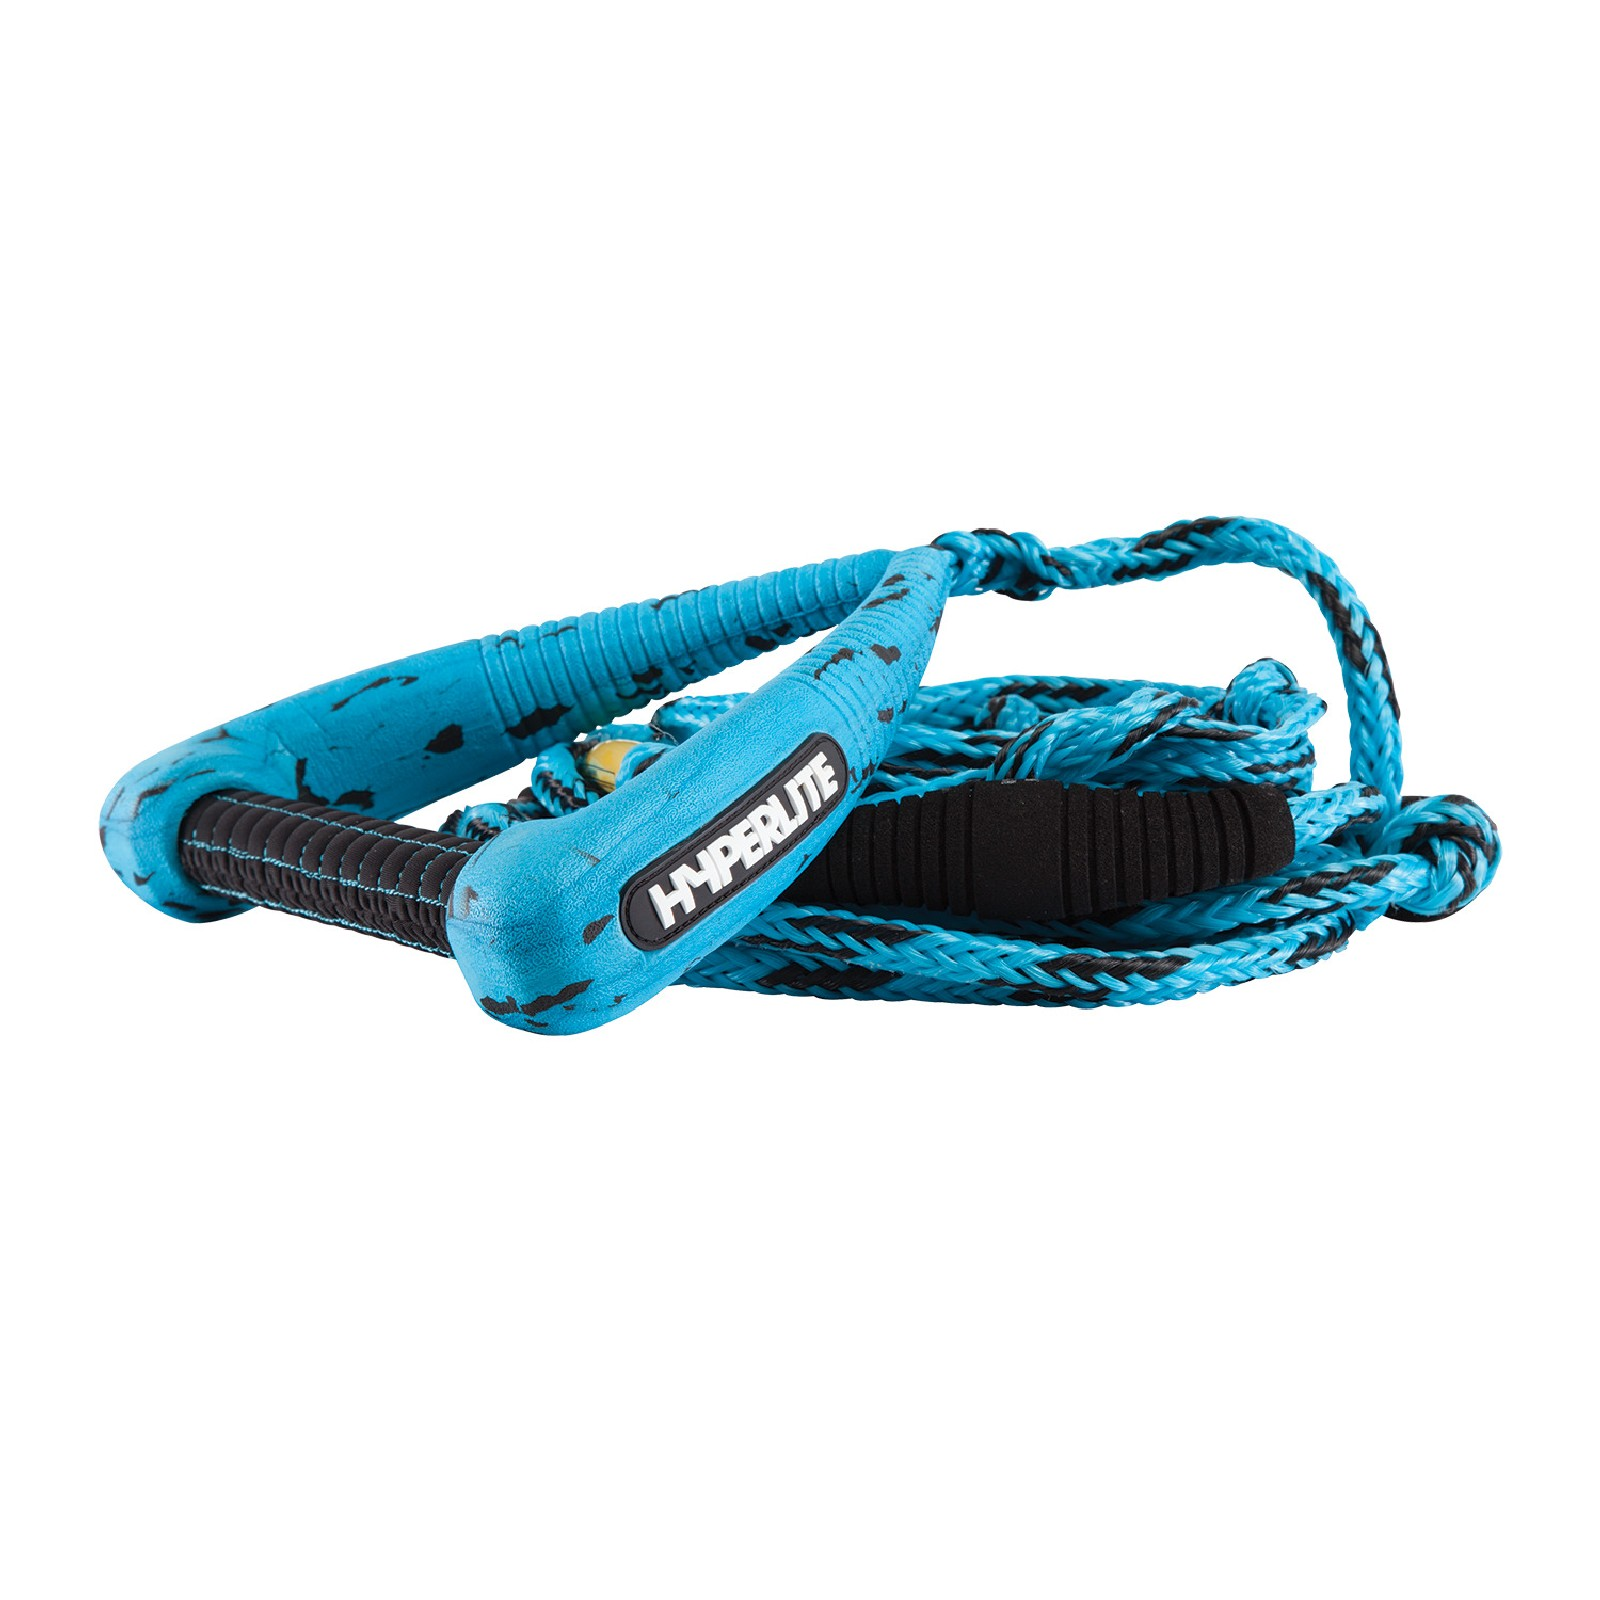 25' PRO SURF ROPE W/HANDLE PACKAGE - BLUE HYPERLITE 2019